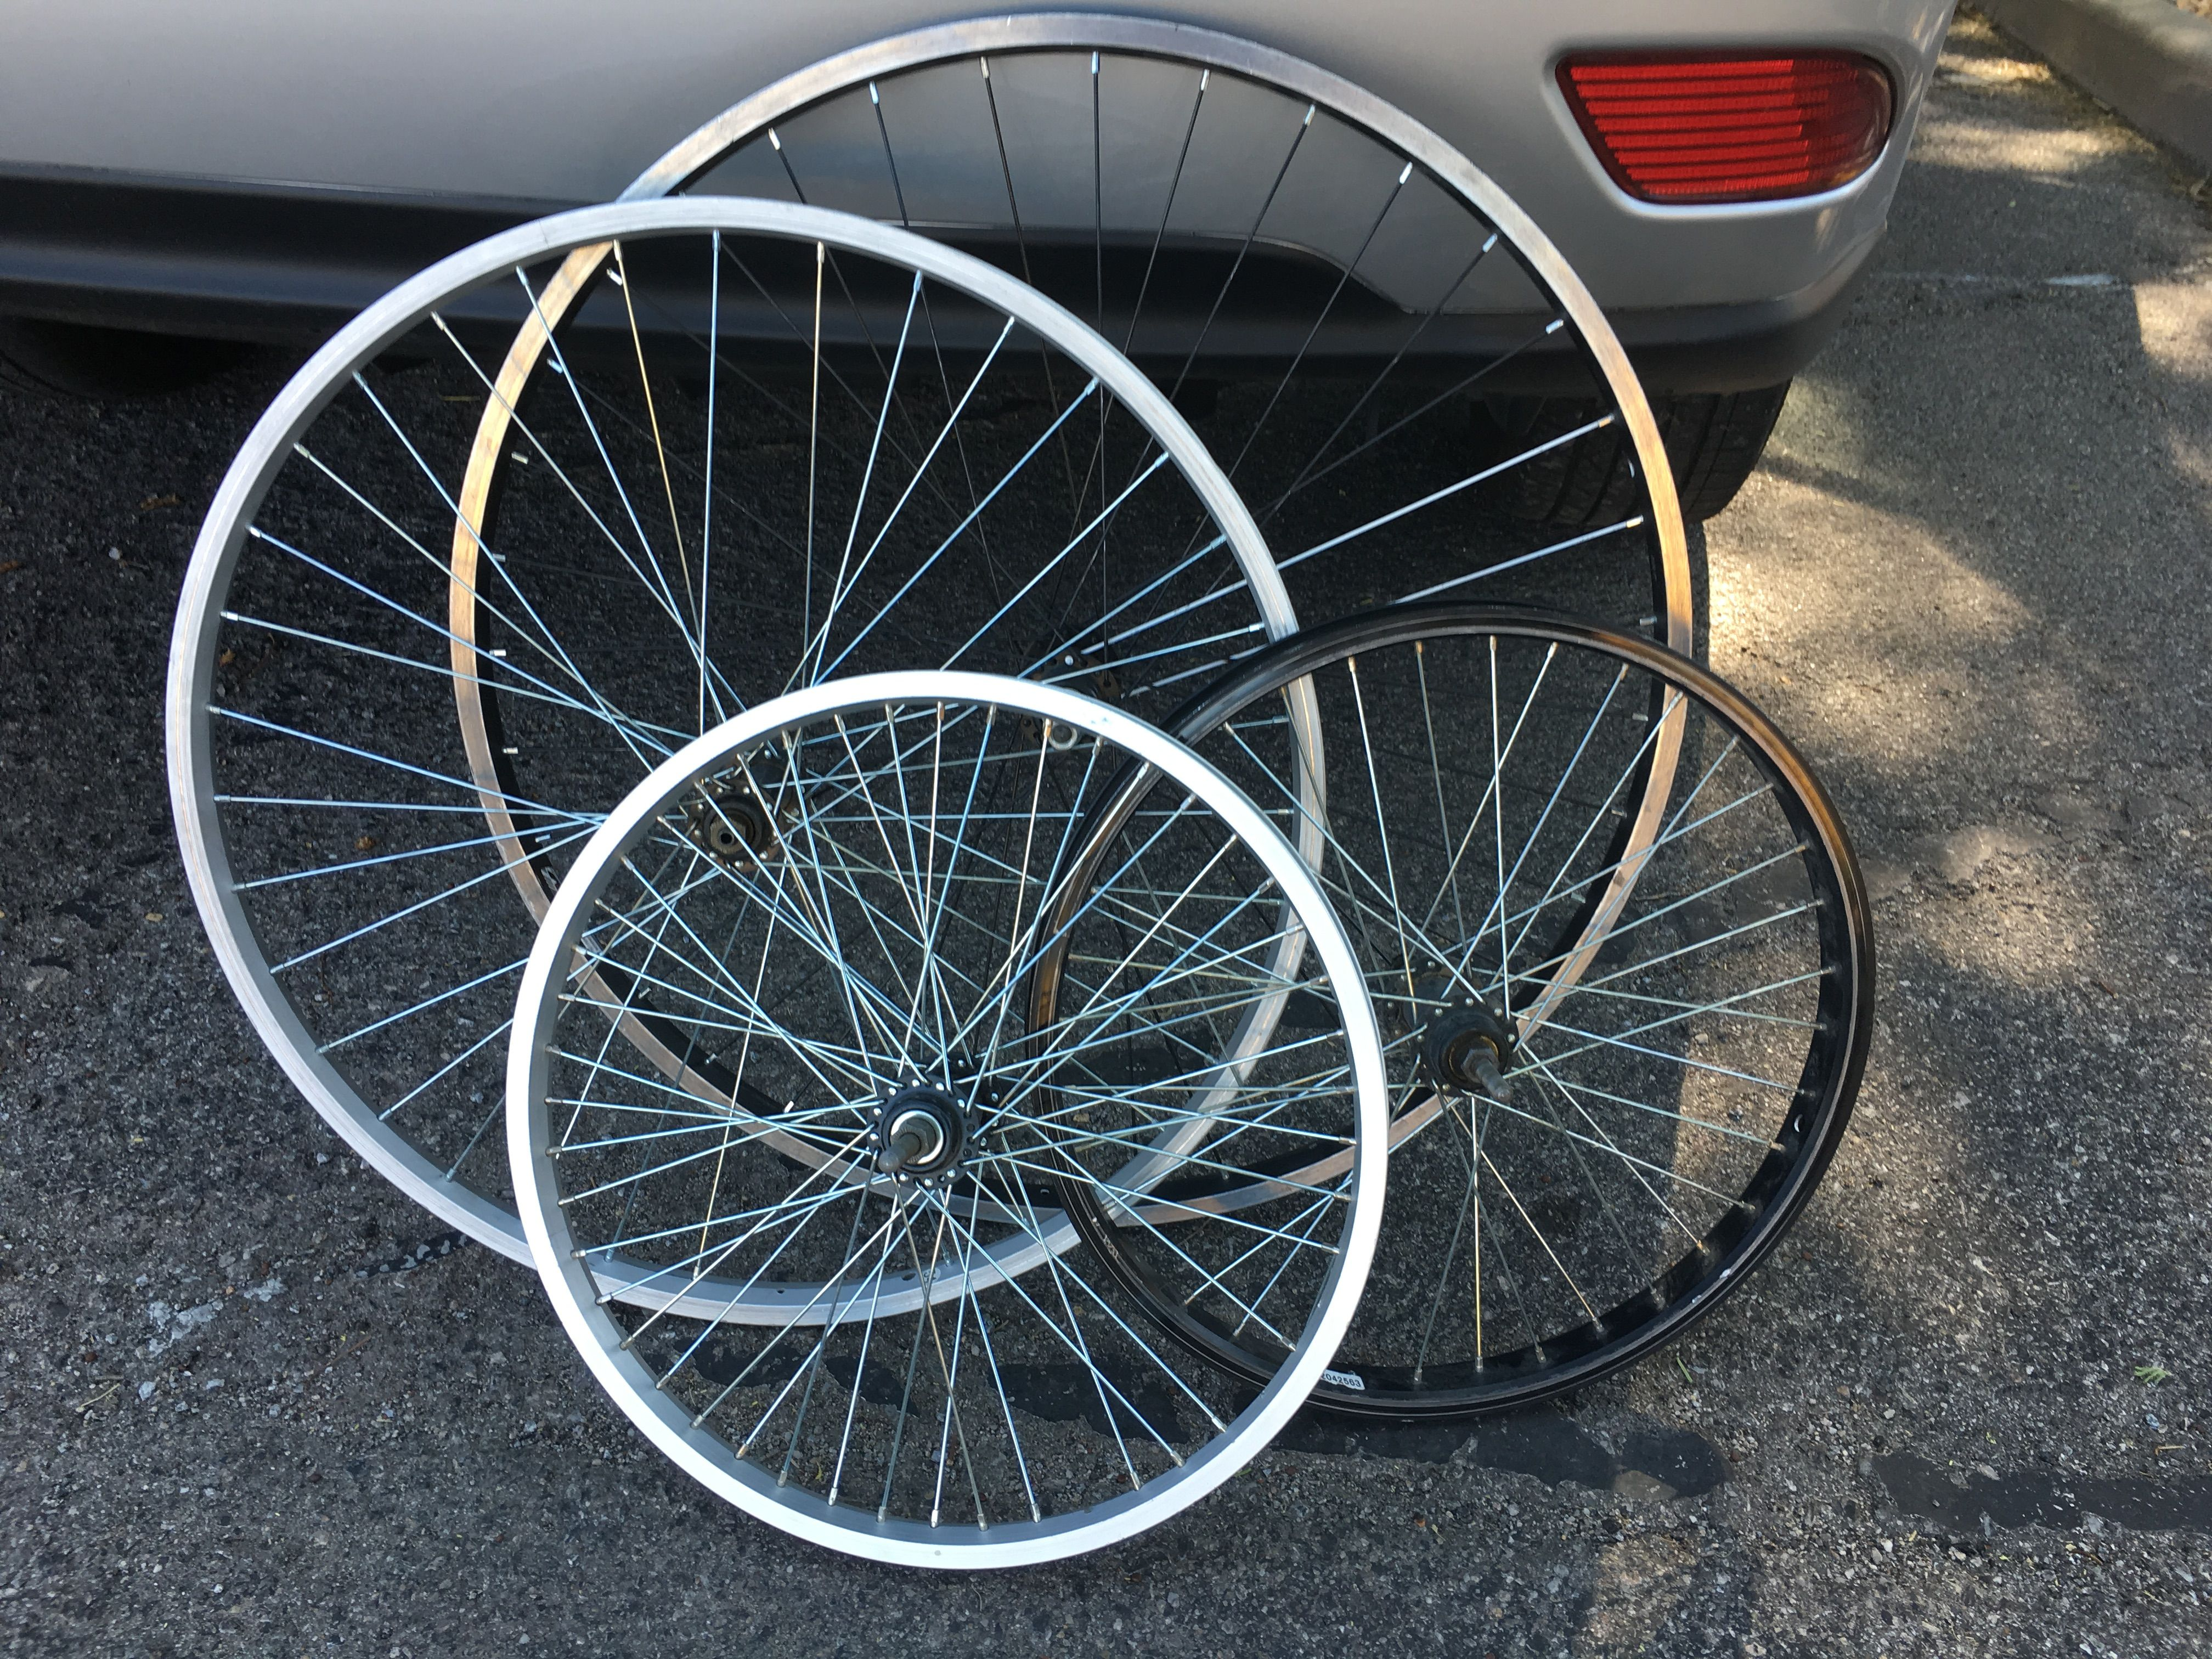 Bicycle Wheels Missing A Few Spokes Will Go Into The Wheel